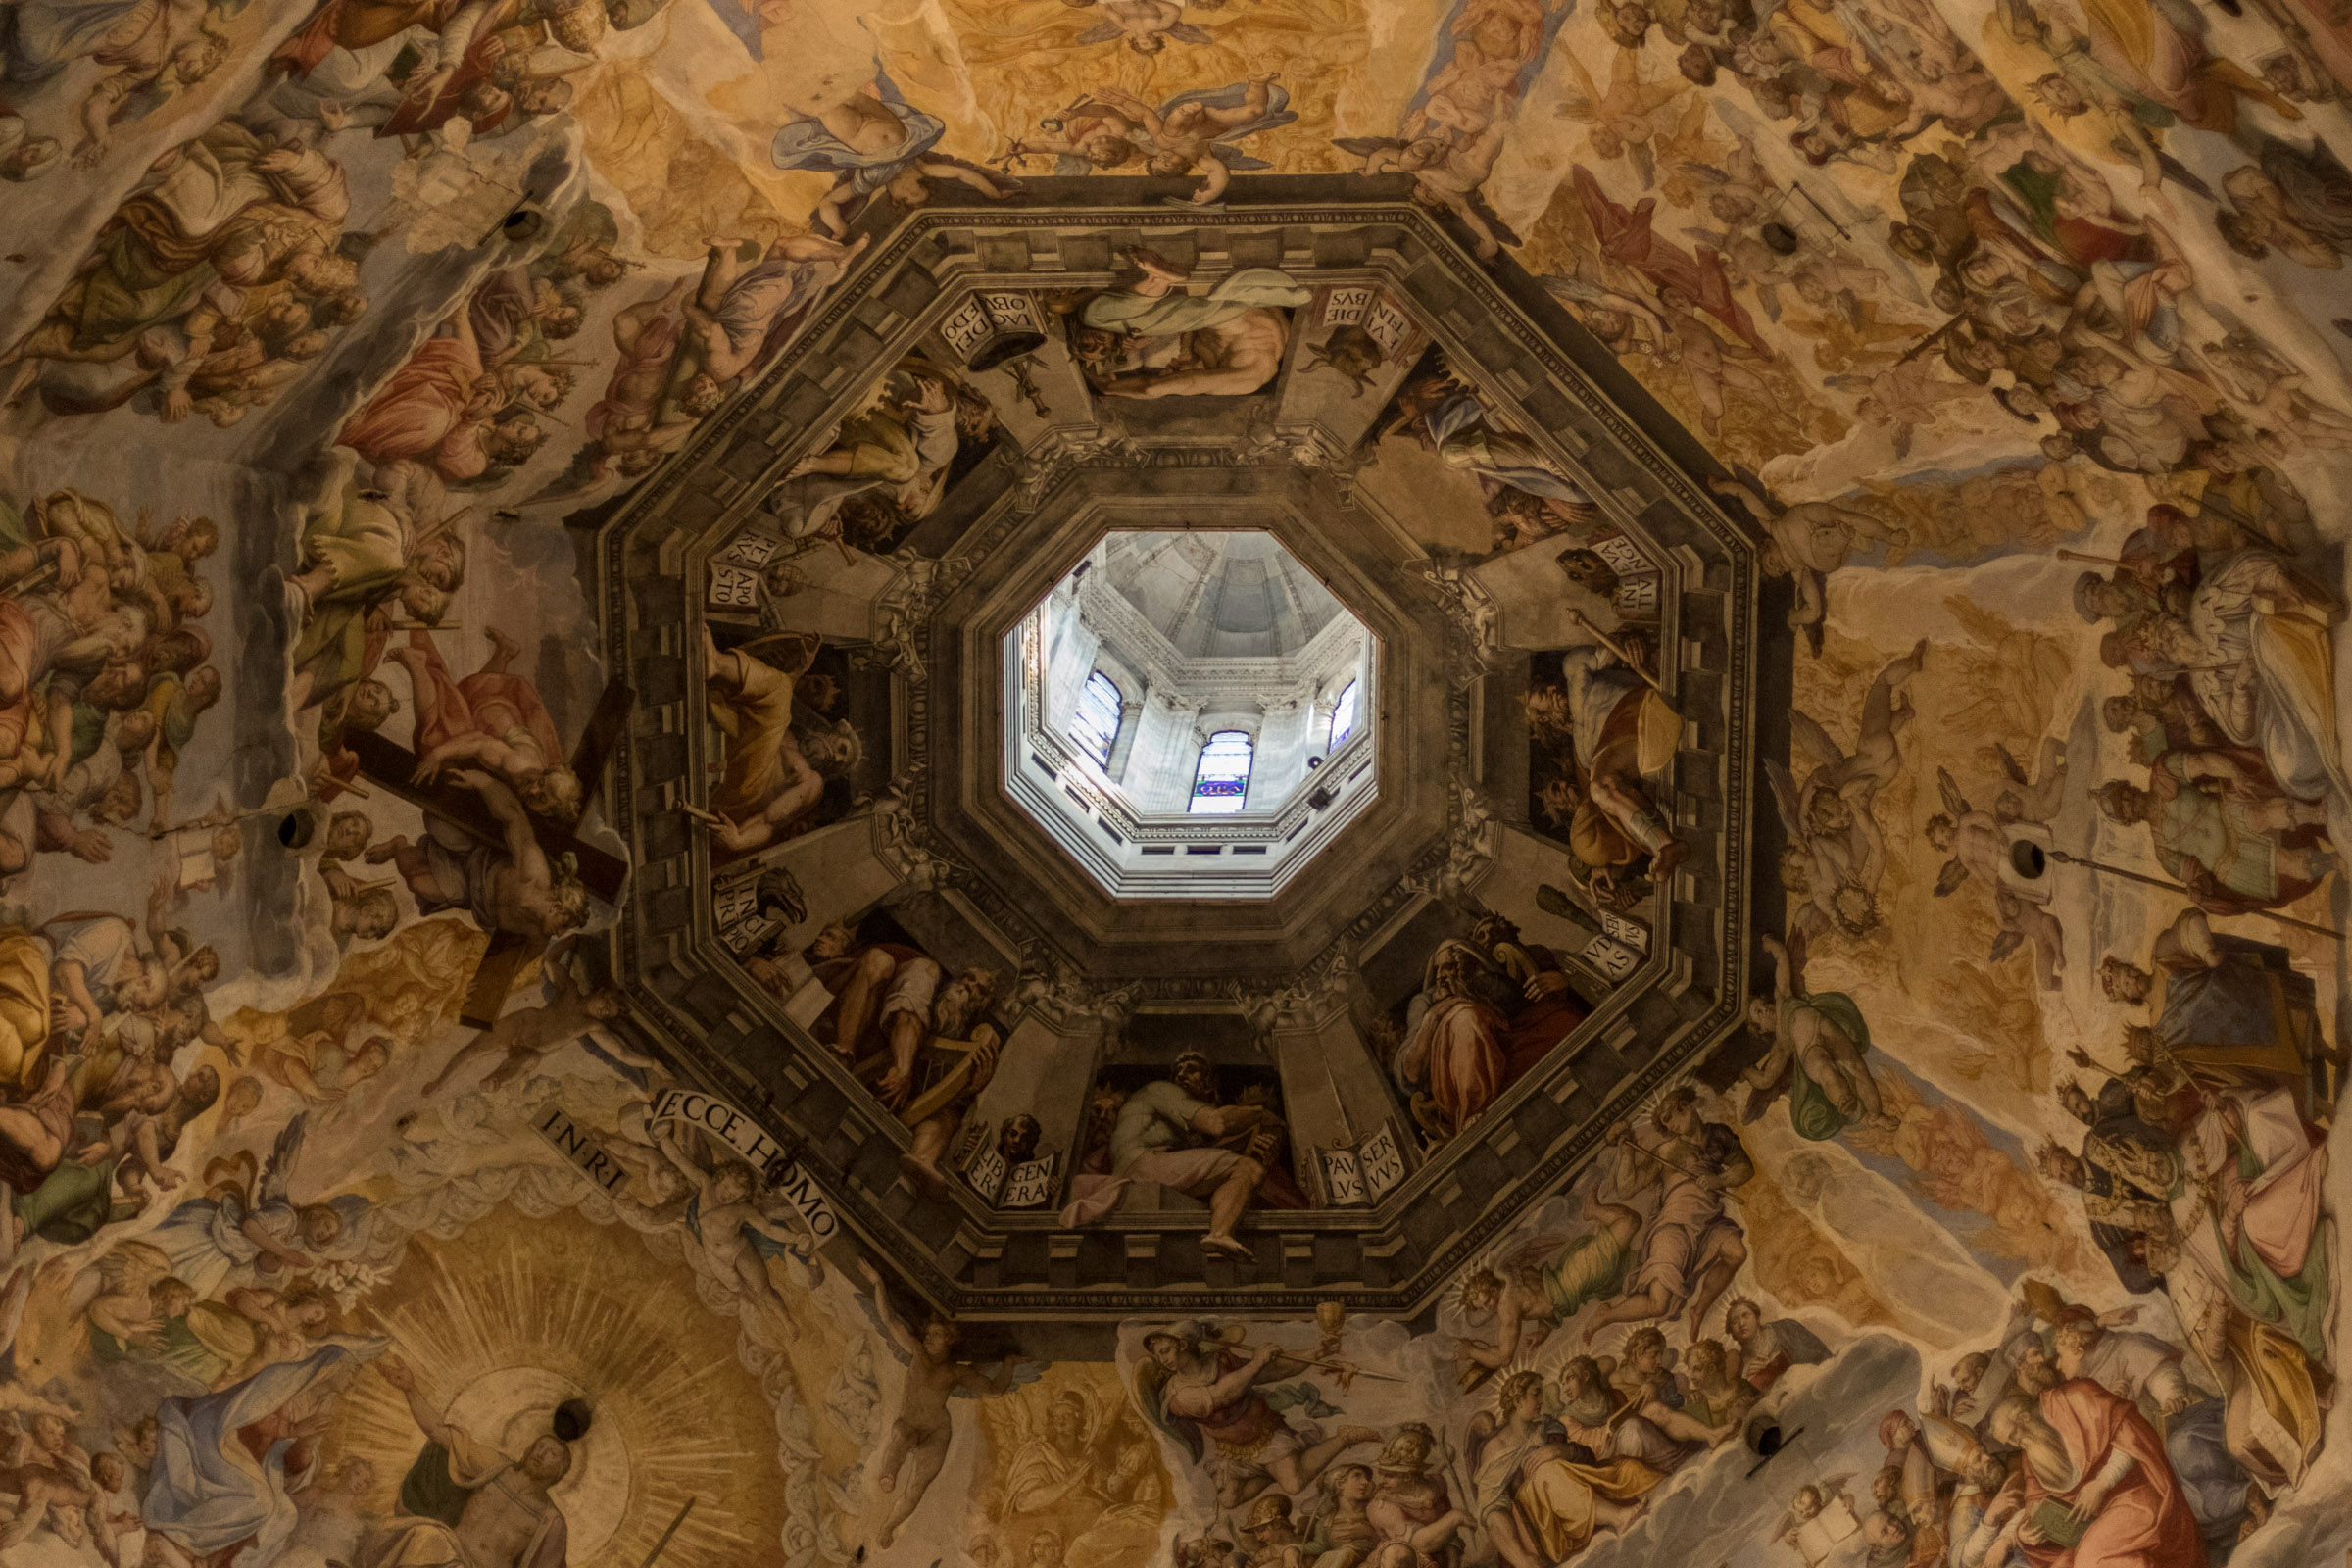 Interior Dome of the Florence Cathedral